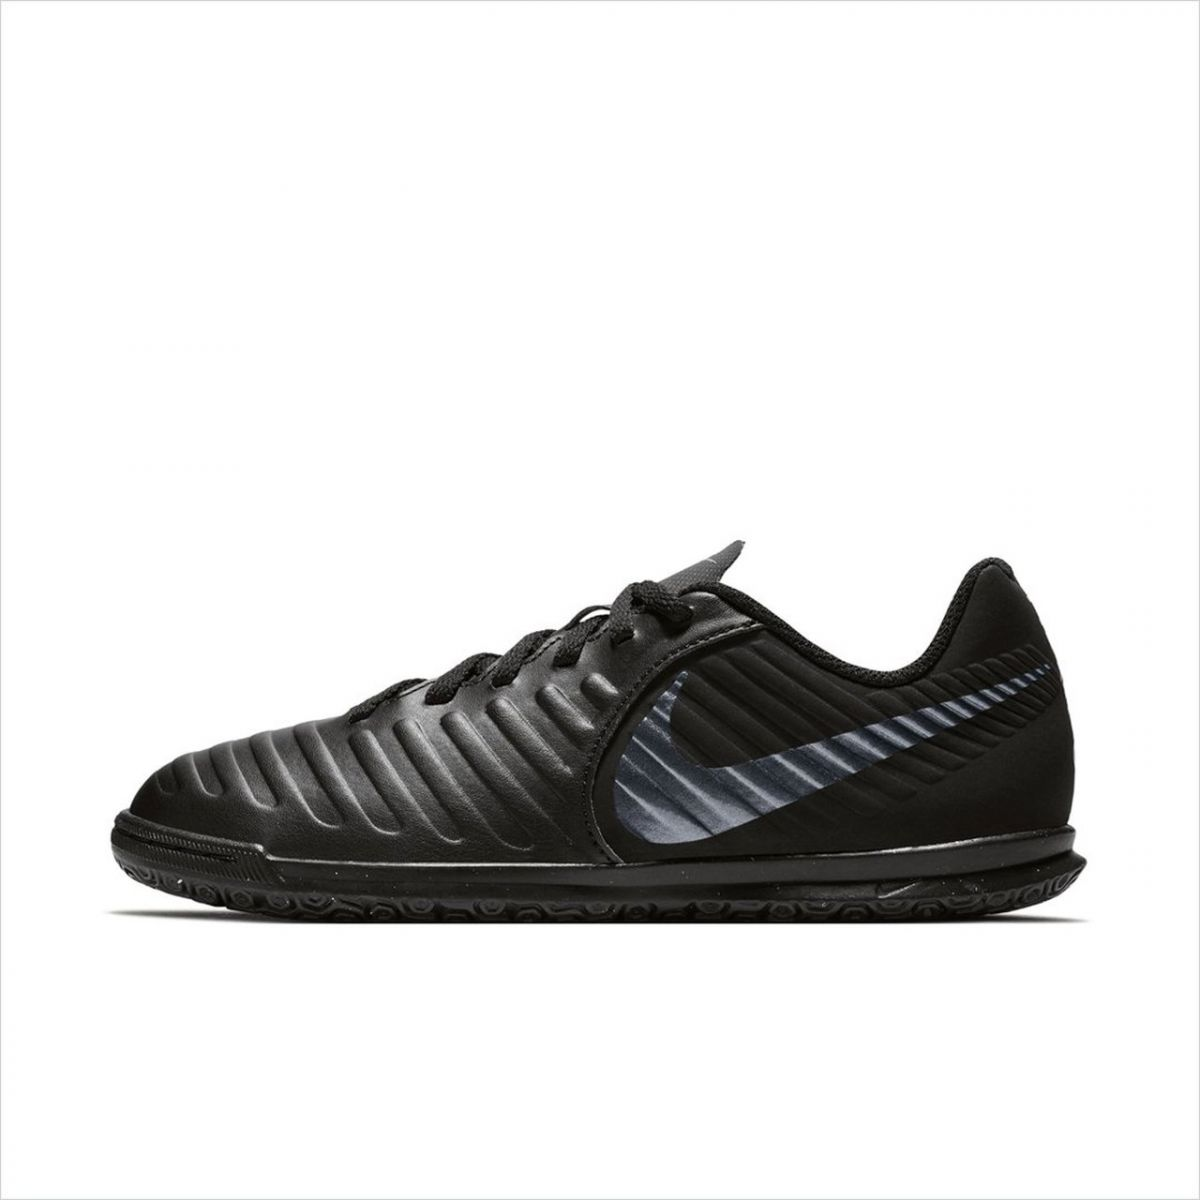 Nike LegendX 7 Club IC GS (AH7260-001)